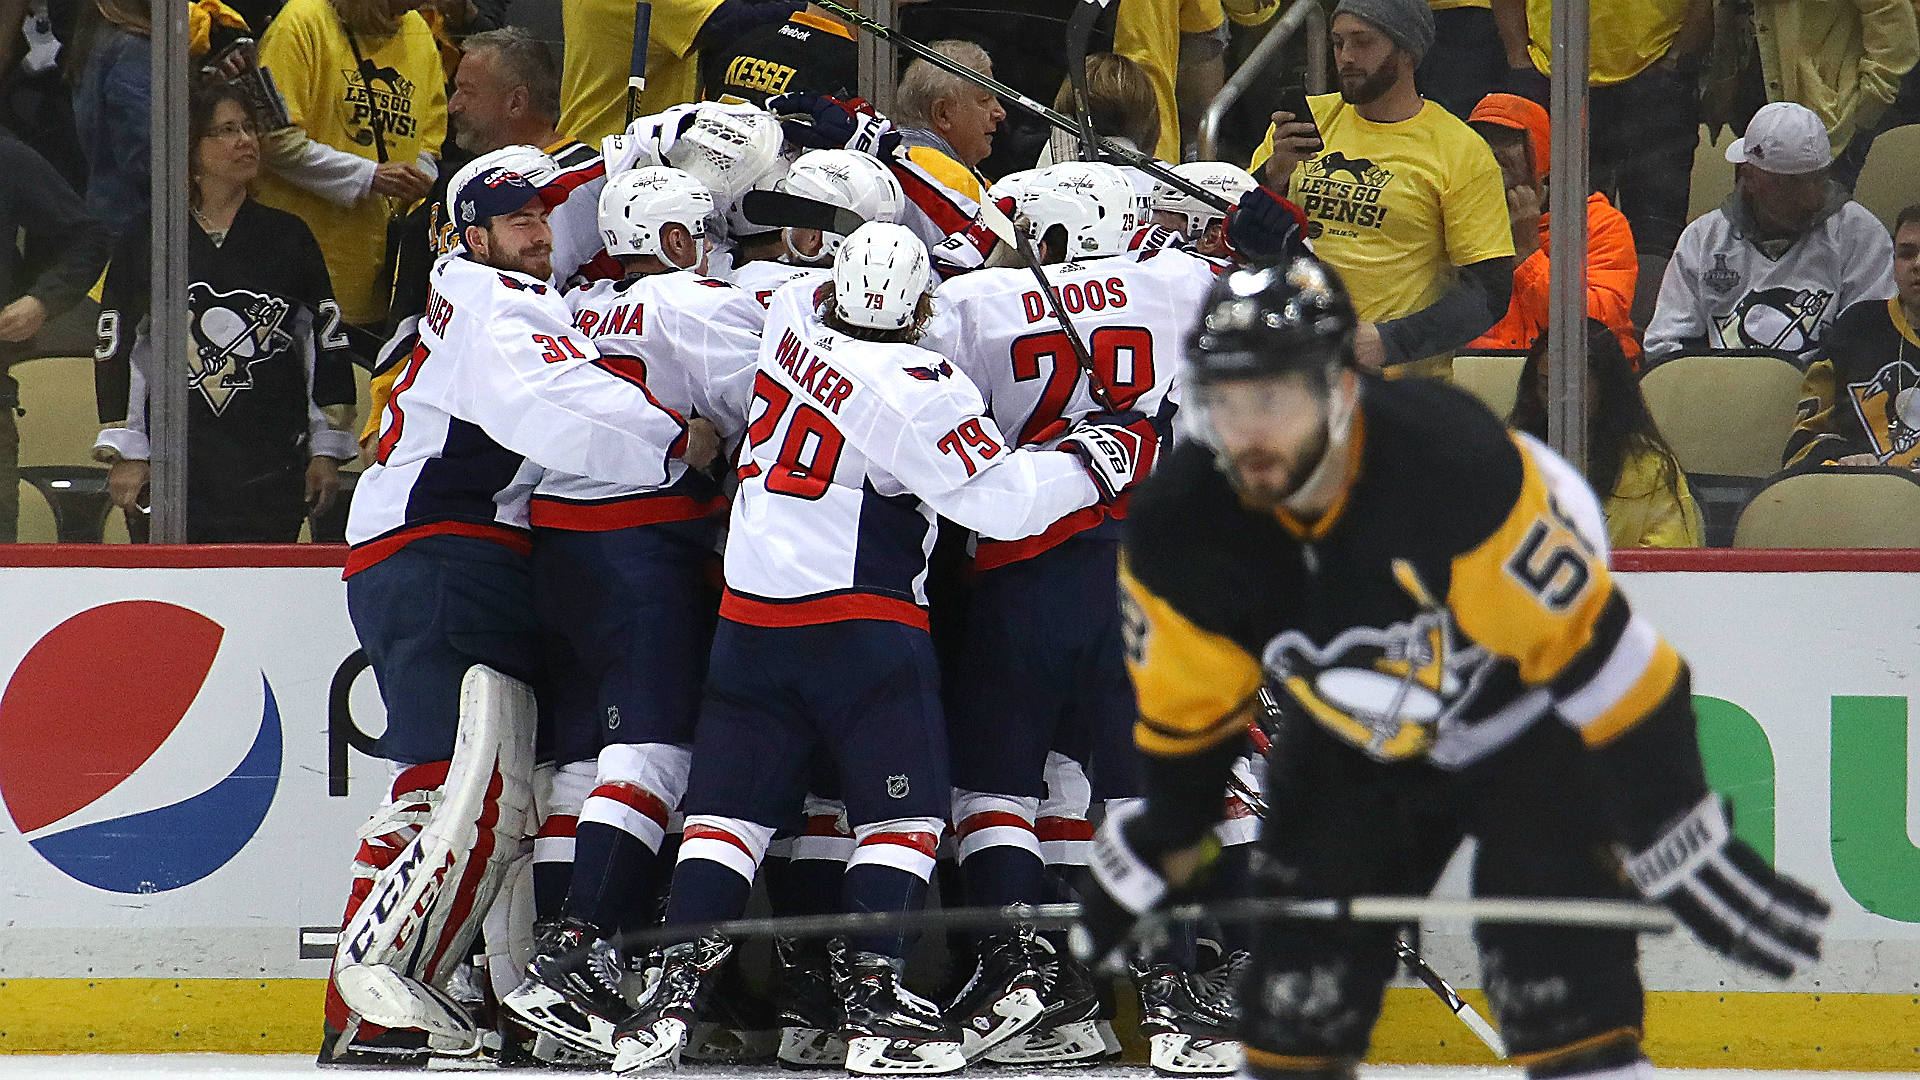 Tony Kornheiser and Michael Wilbon miss context of Capitals' victory over Penguins